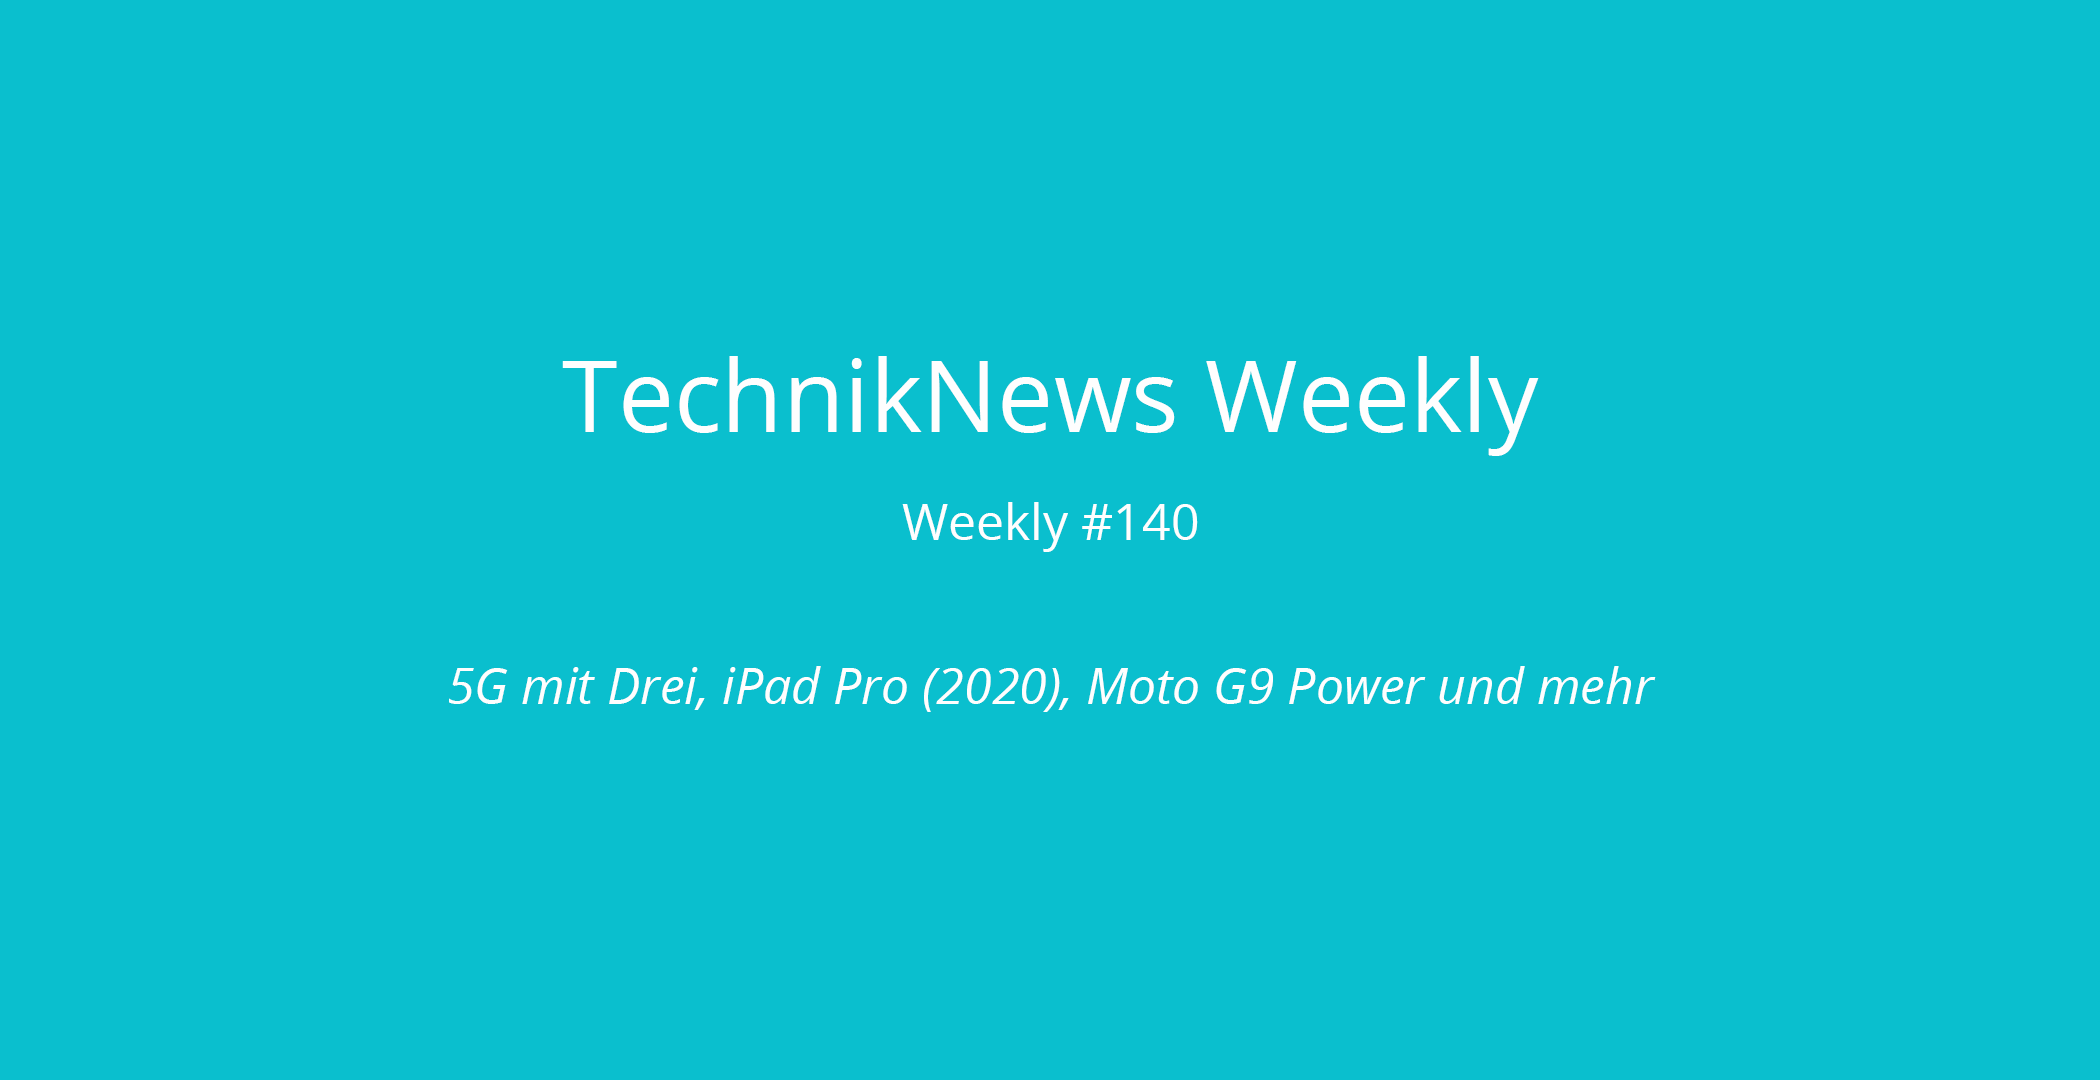 TechnikNews Weekly 140